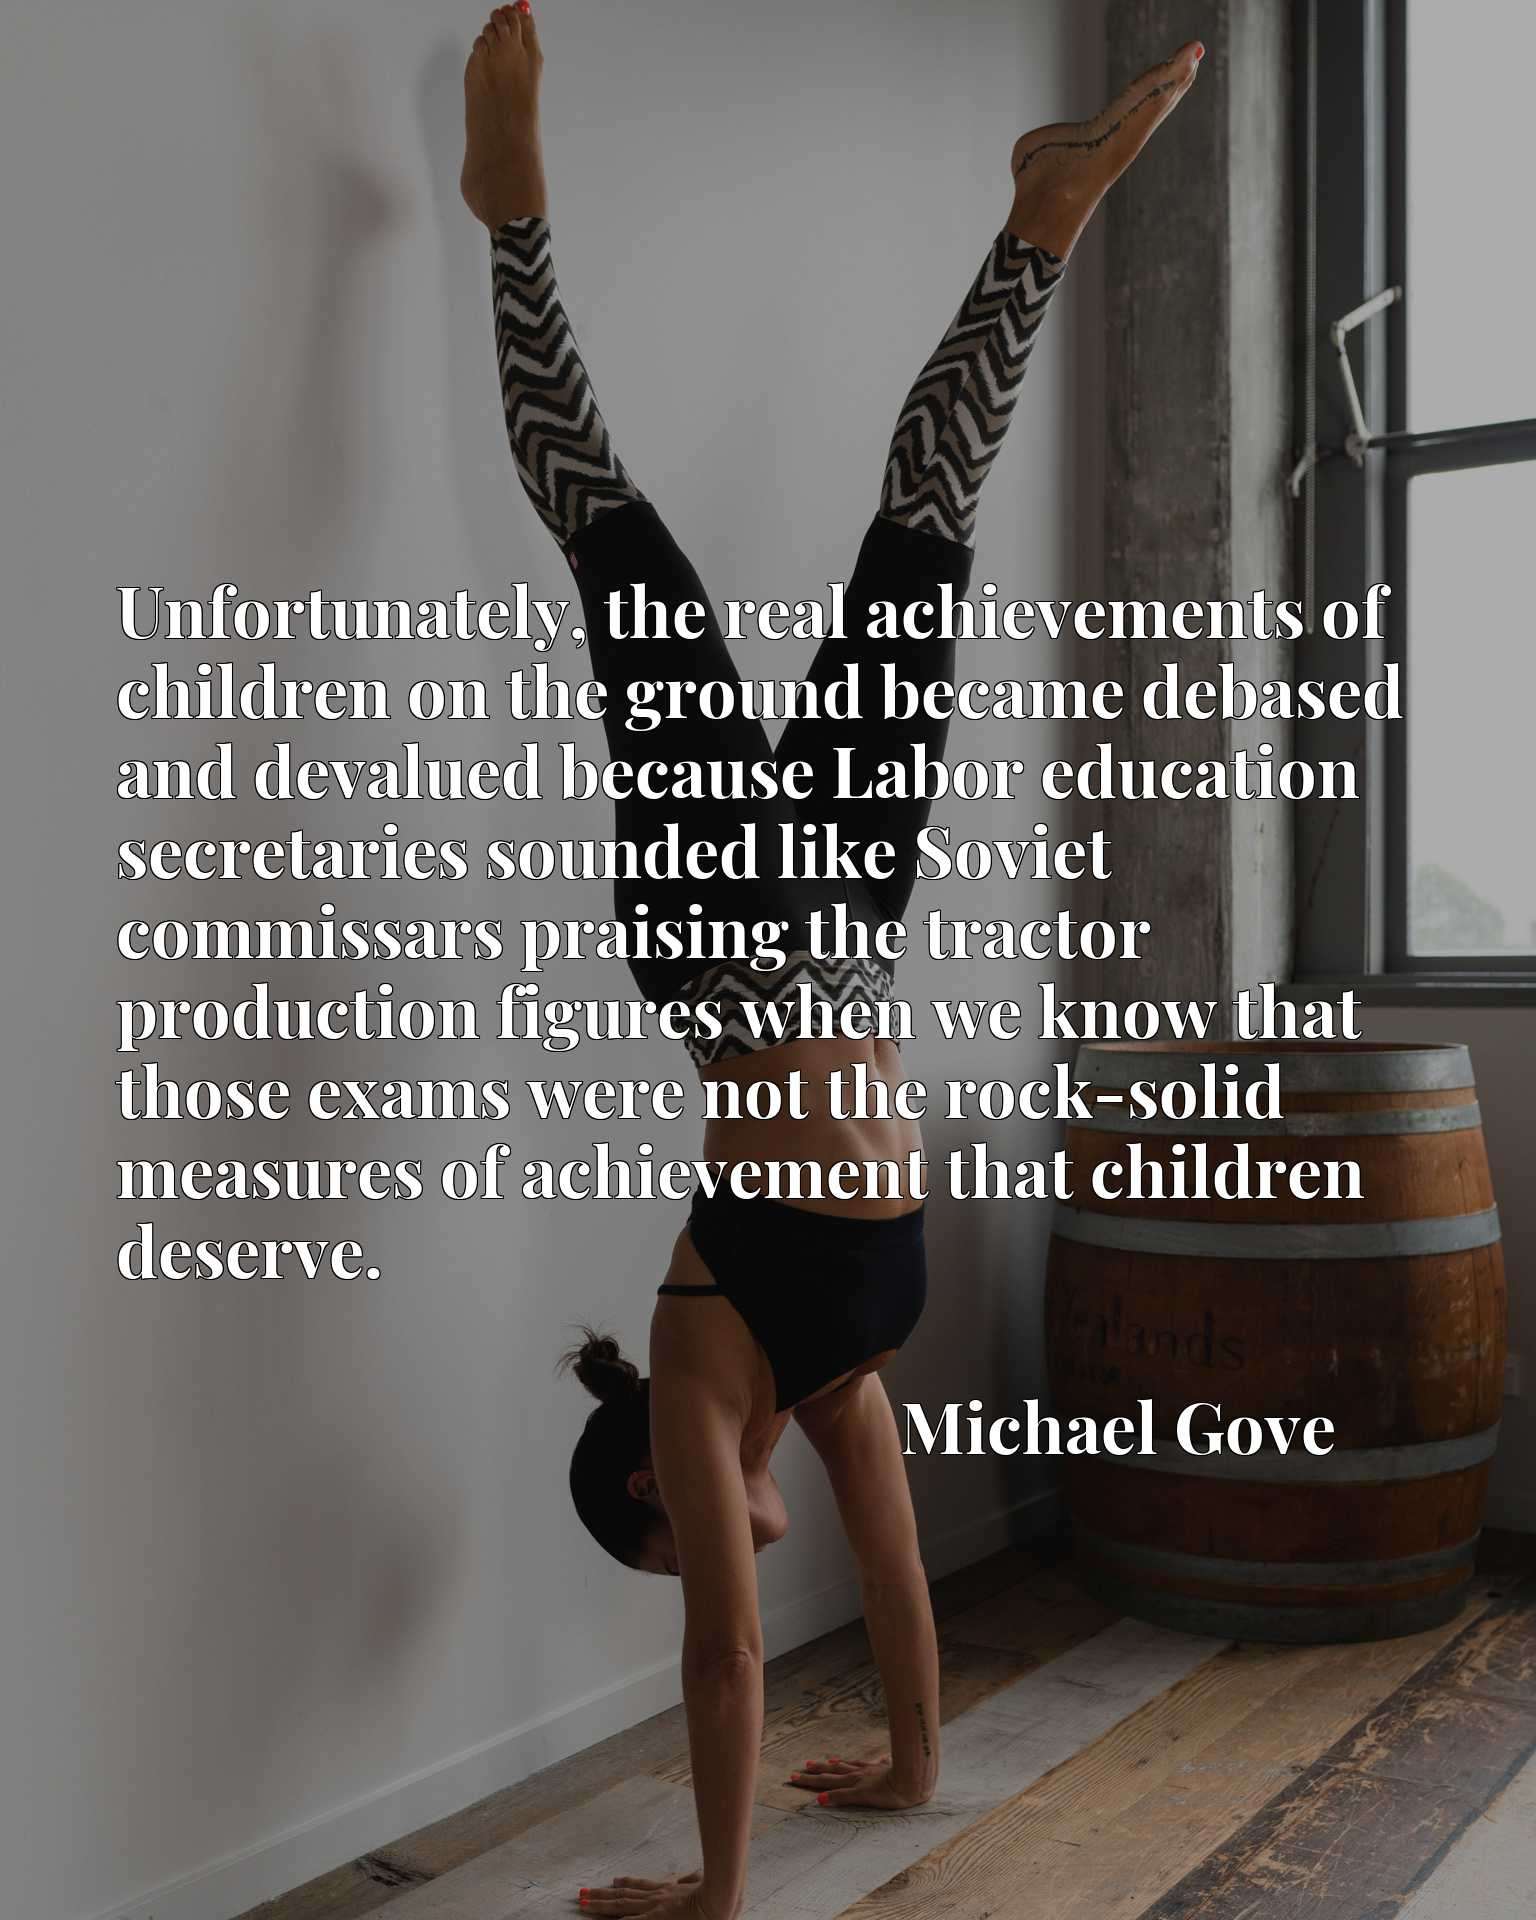 Unfortunately, the real achievements of children on the ground became debased and devalued because Labor education secretaries sounded like Soviet commissars praising the tractor production figures when we know that those exams were not the rock-solid measures of achievement that children deserve.